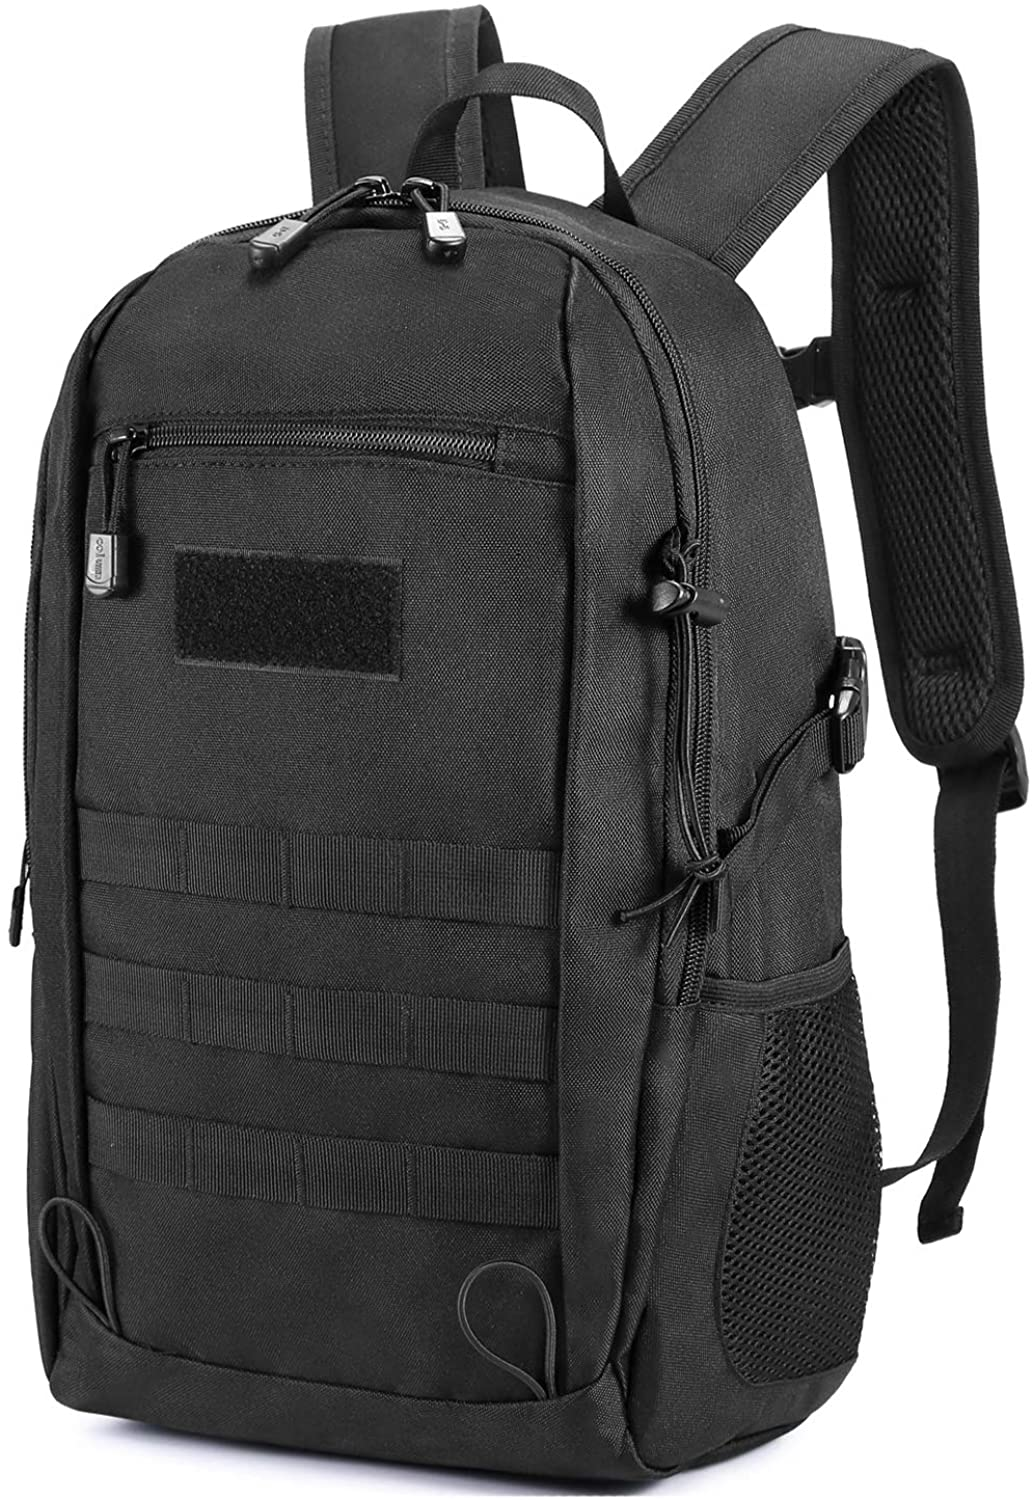 20L Tactical Backpack Small Military Gear Assault Pack MOLLE Hiking Daypack